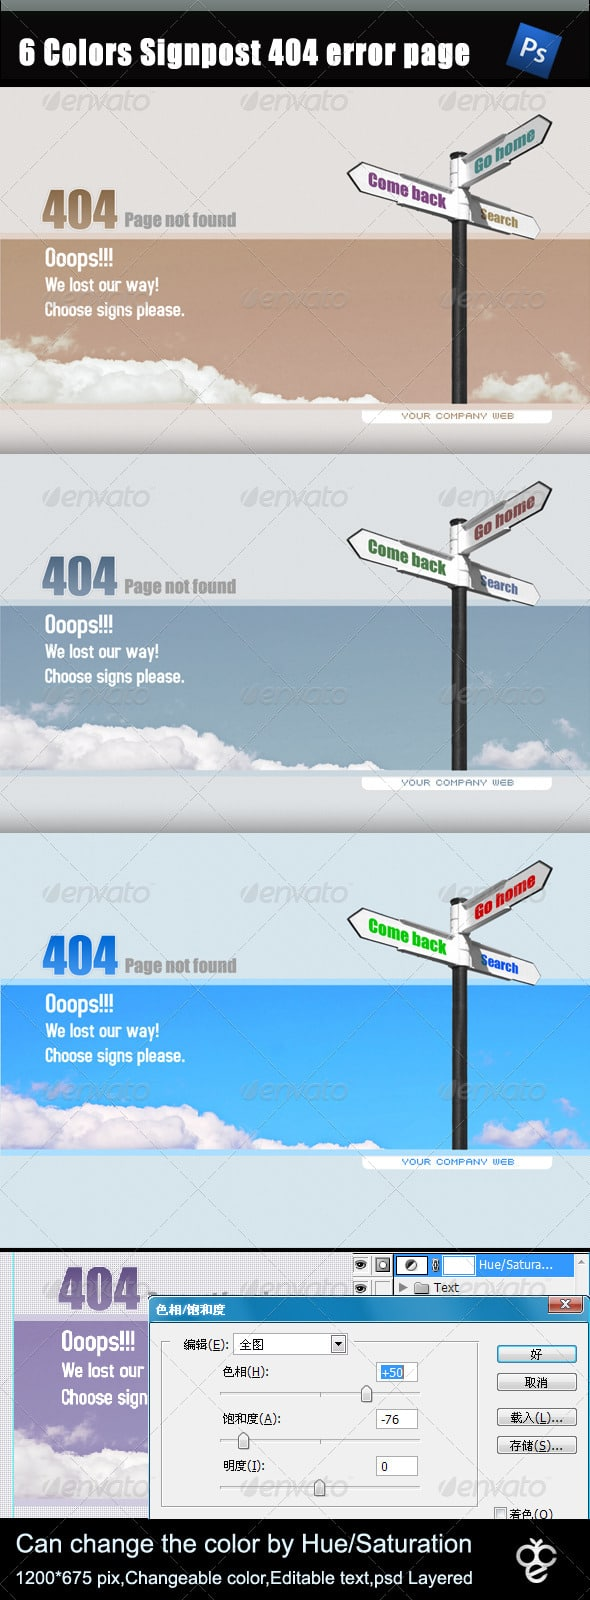 6 Colors Signpost 404 error page